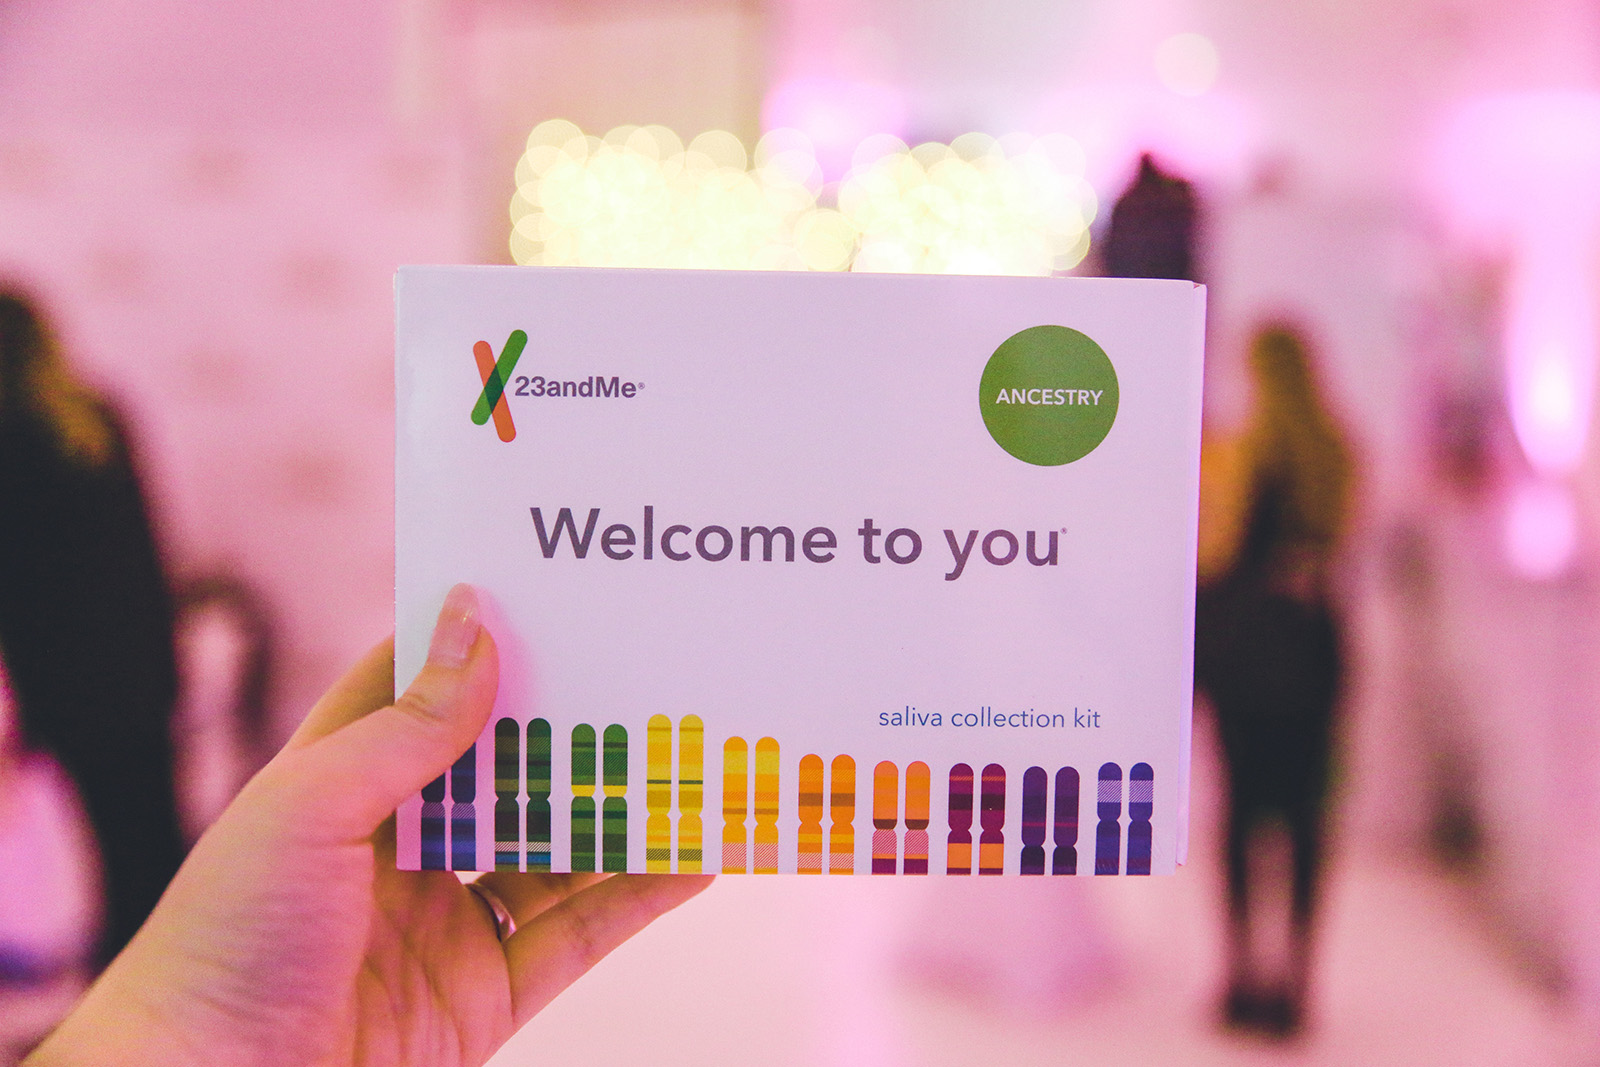 Babbleboxx Holiday 2017 - 23andMe